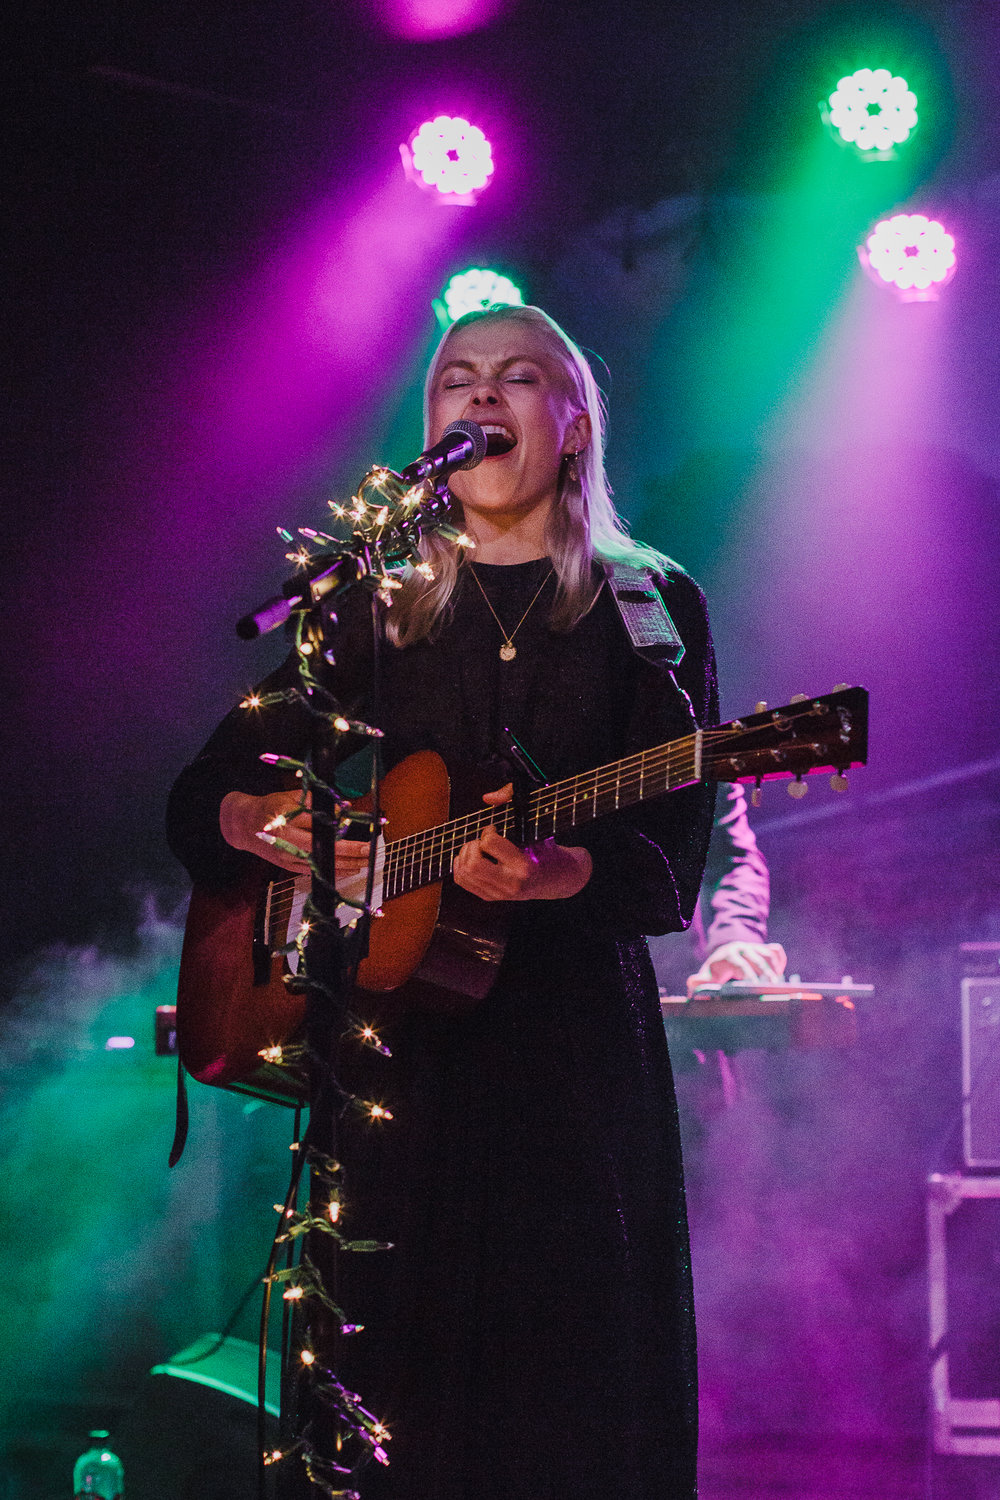 Phoebe_Bridgers